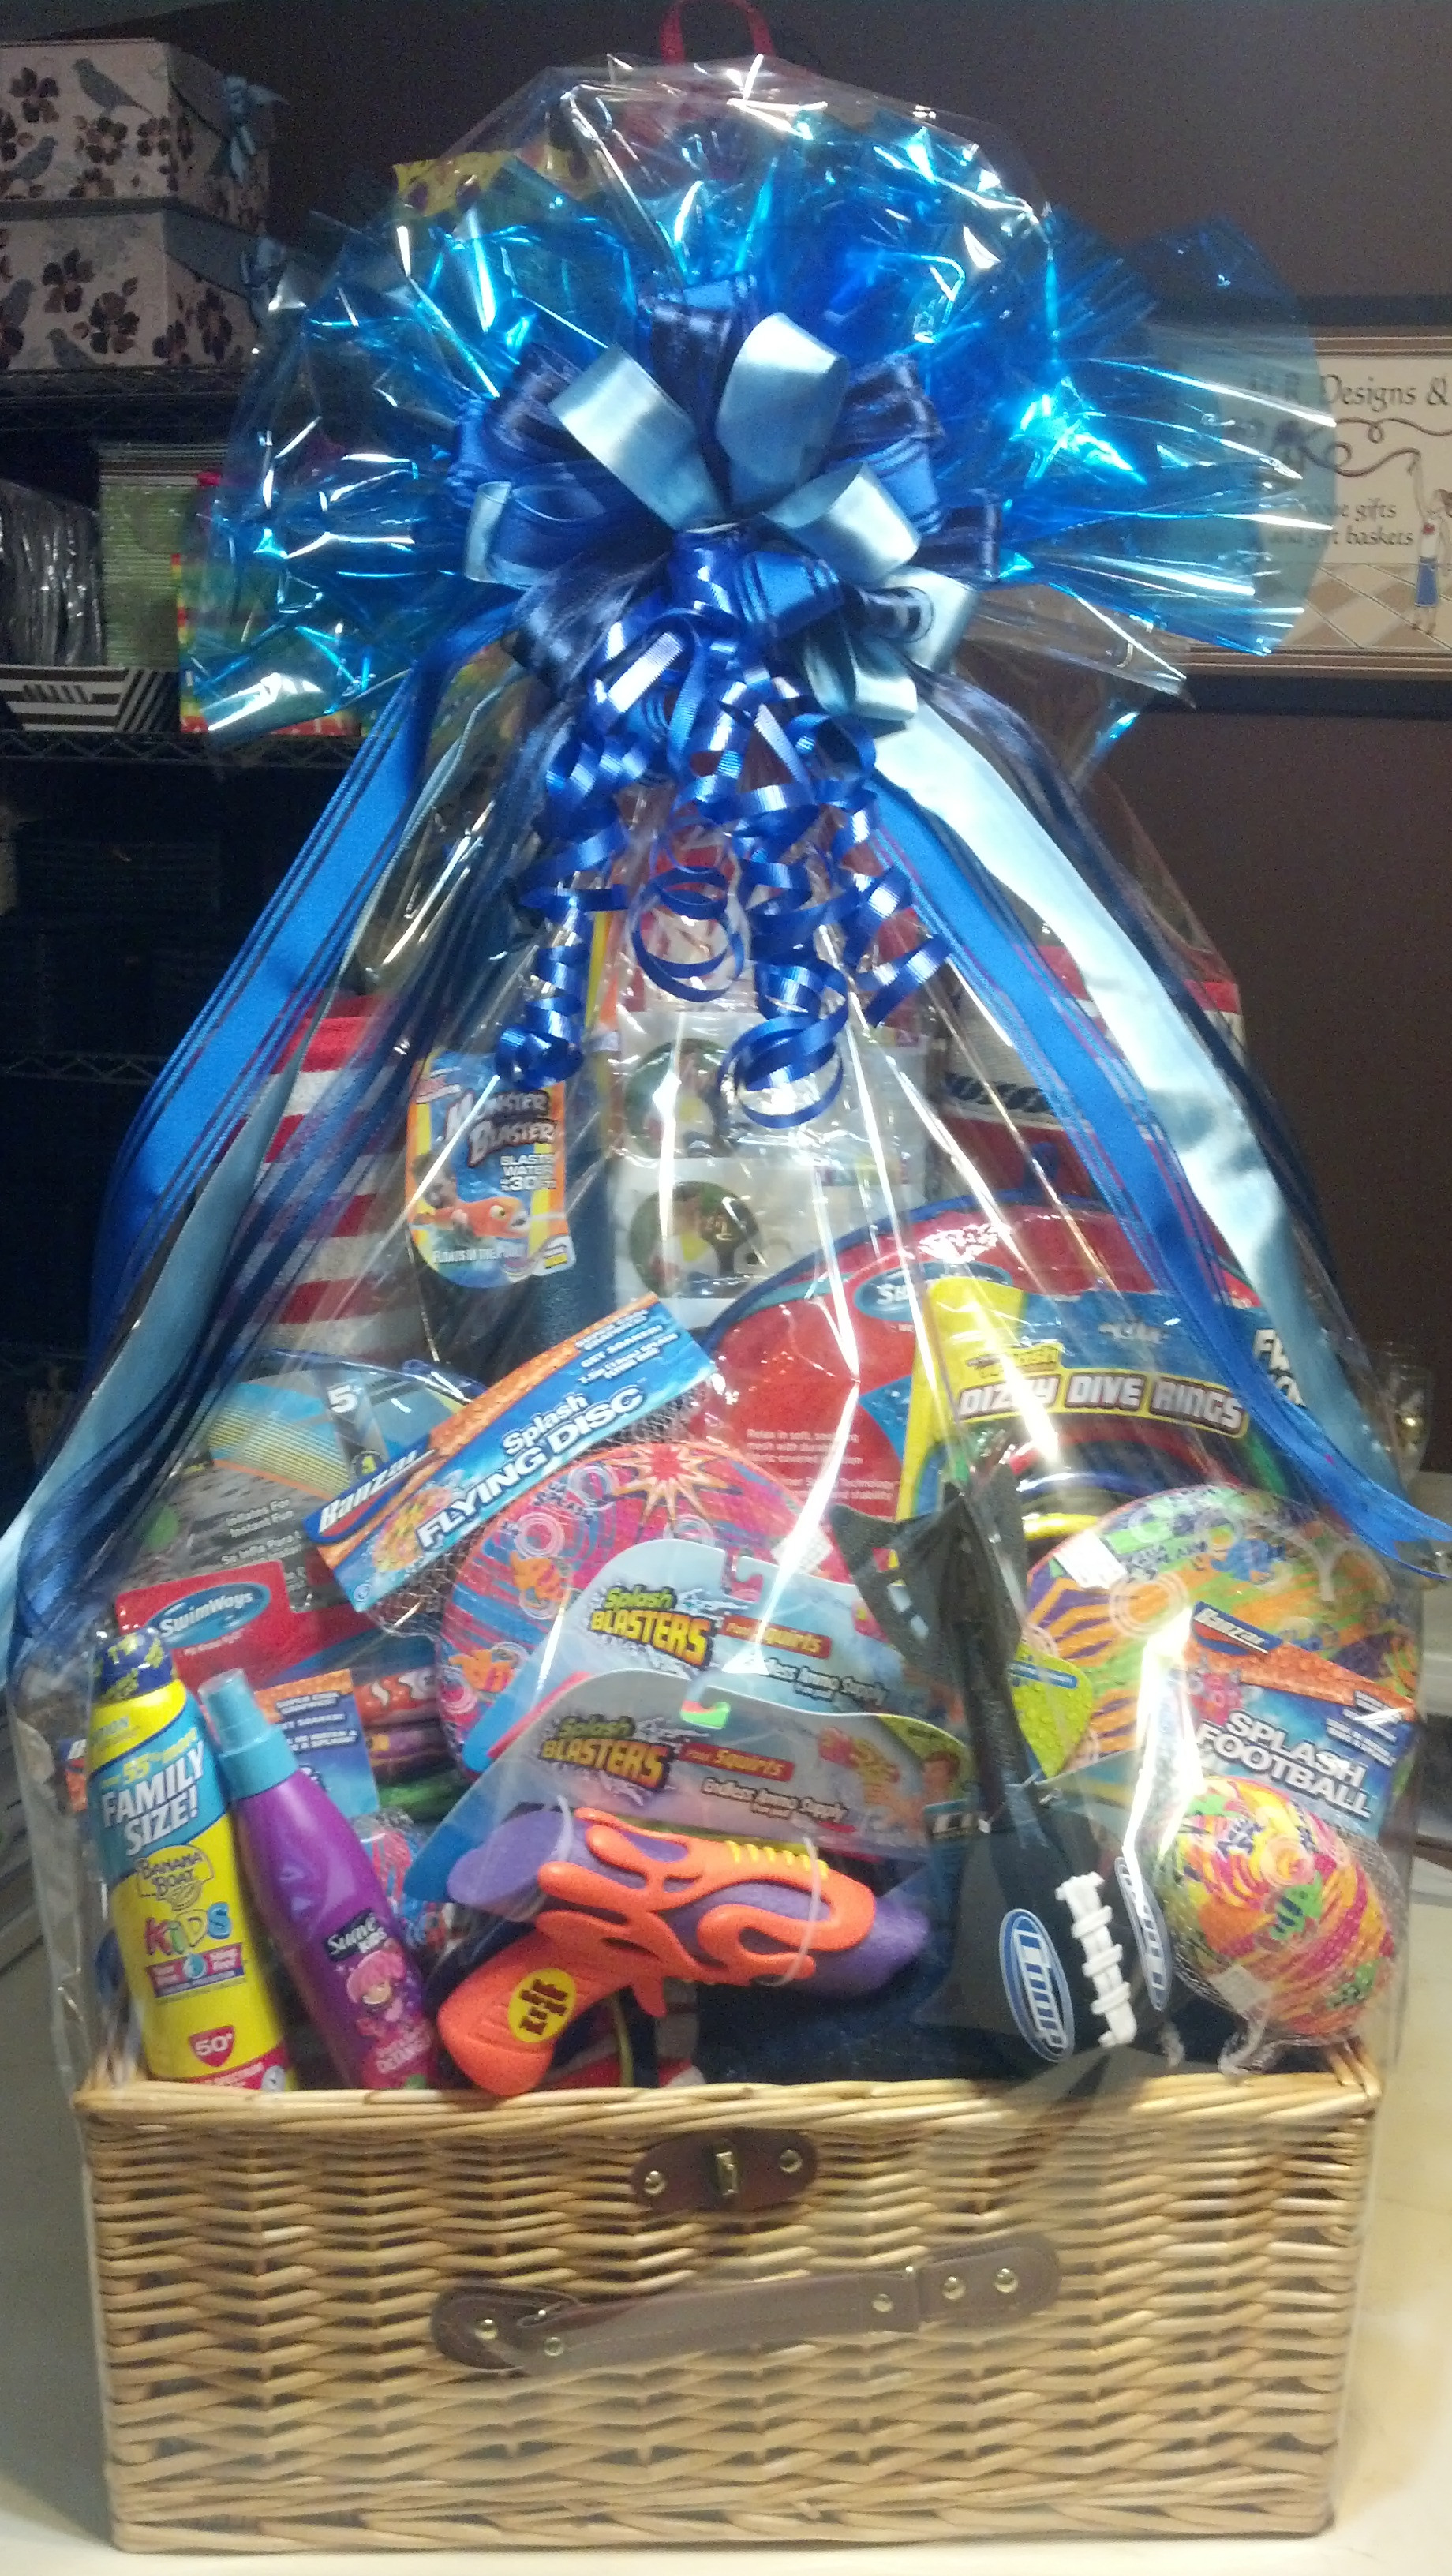 Raffle Gift Basket Ideas  Special Event and Silent Auction Gift Basket Ideas by M R